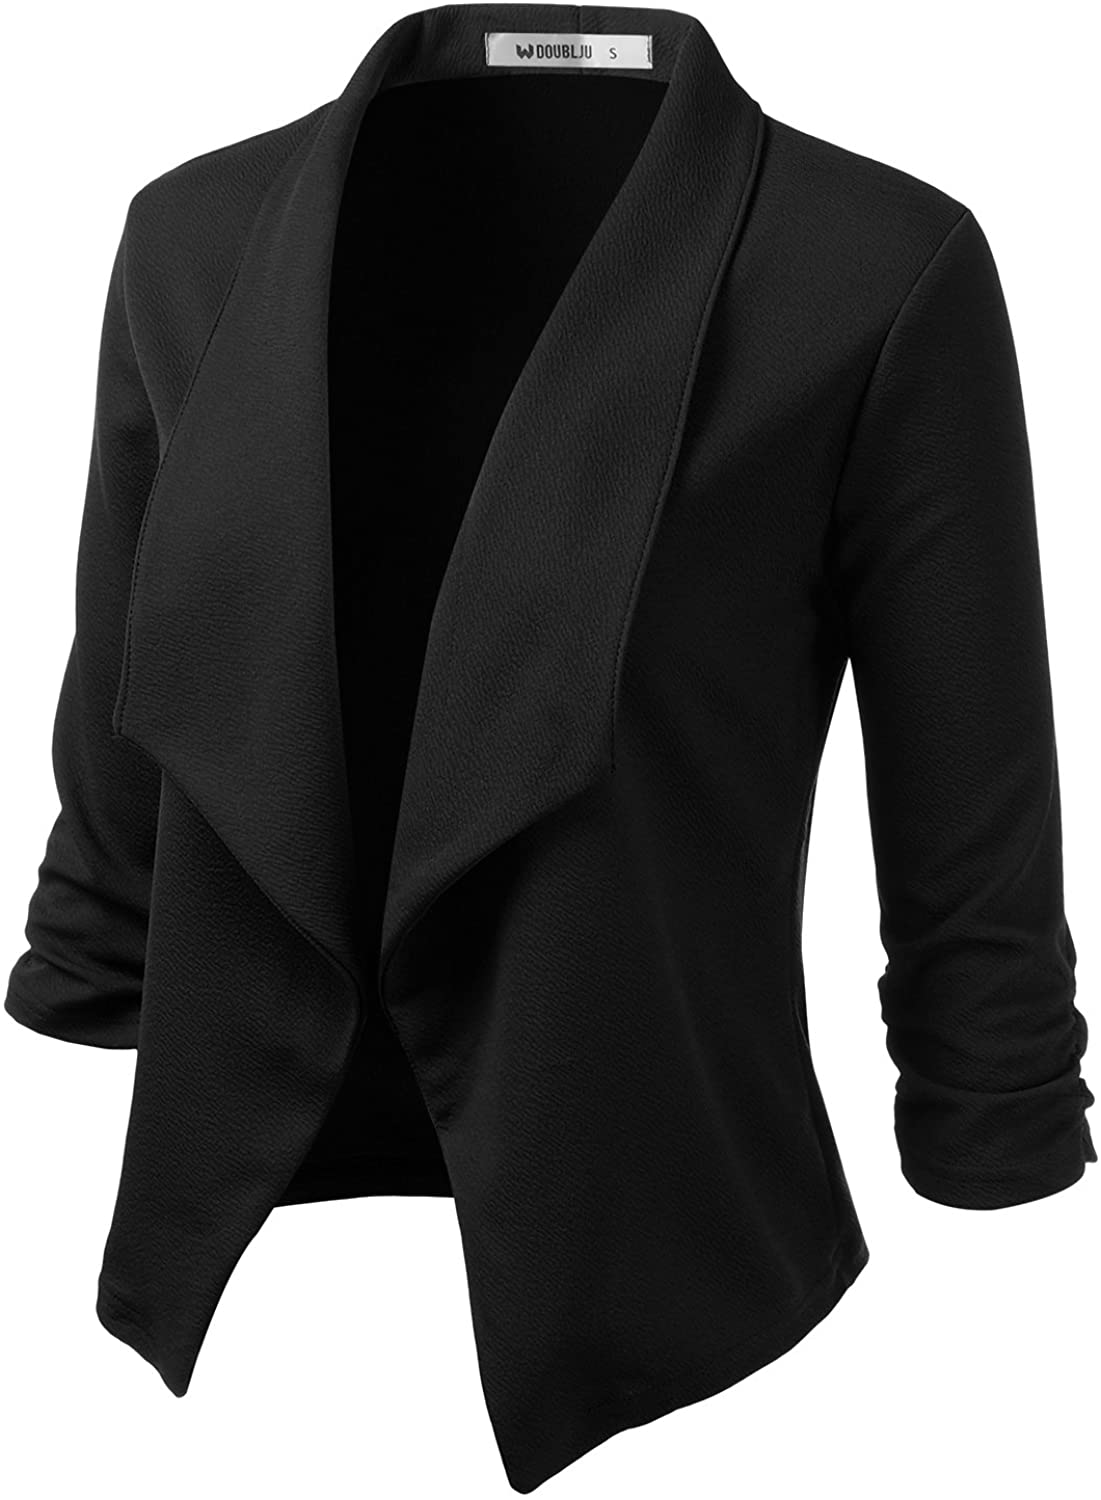 Doublju Womens Lightweight Classic Draped Open Front Blazer with Plus Size